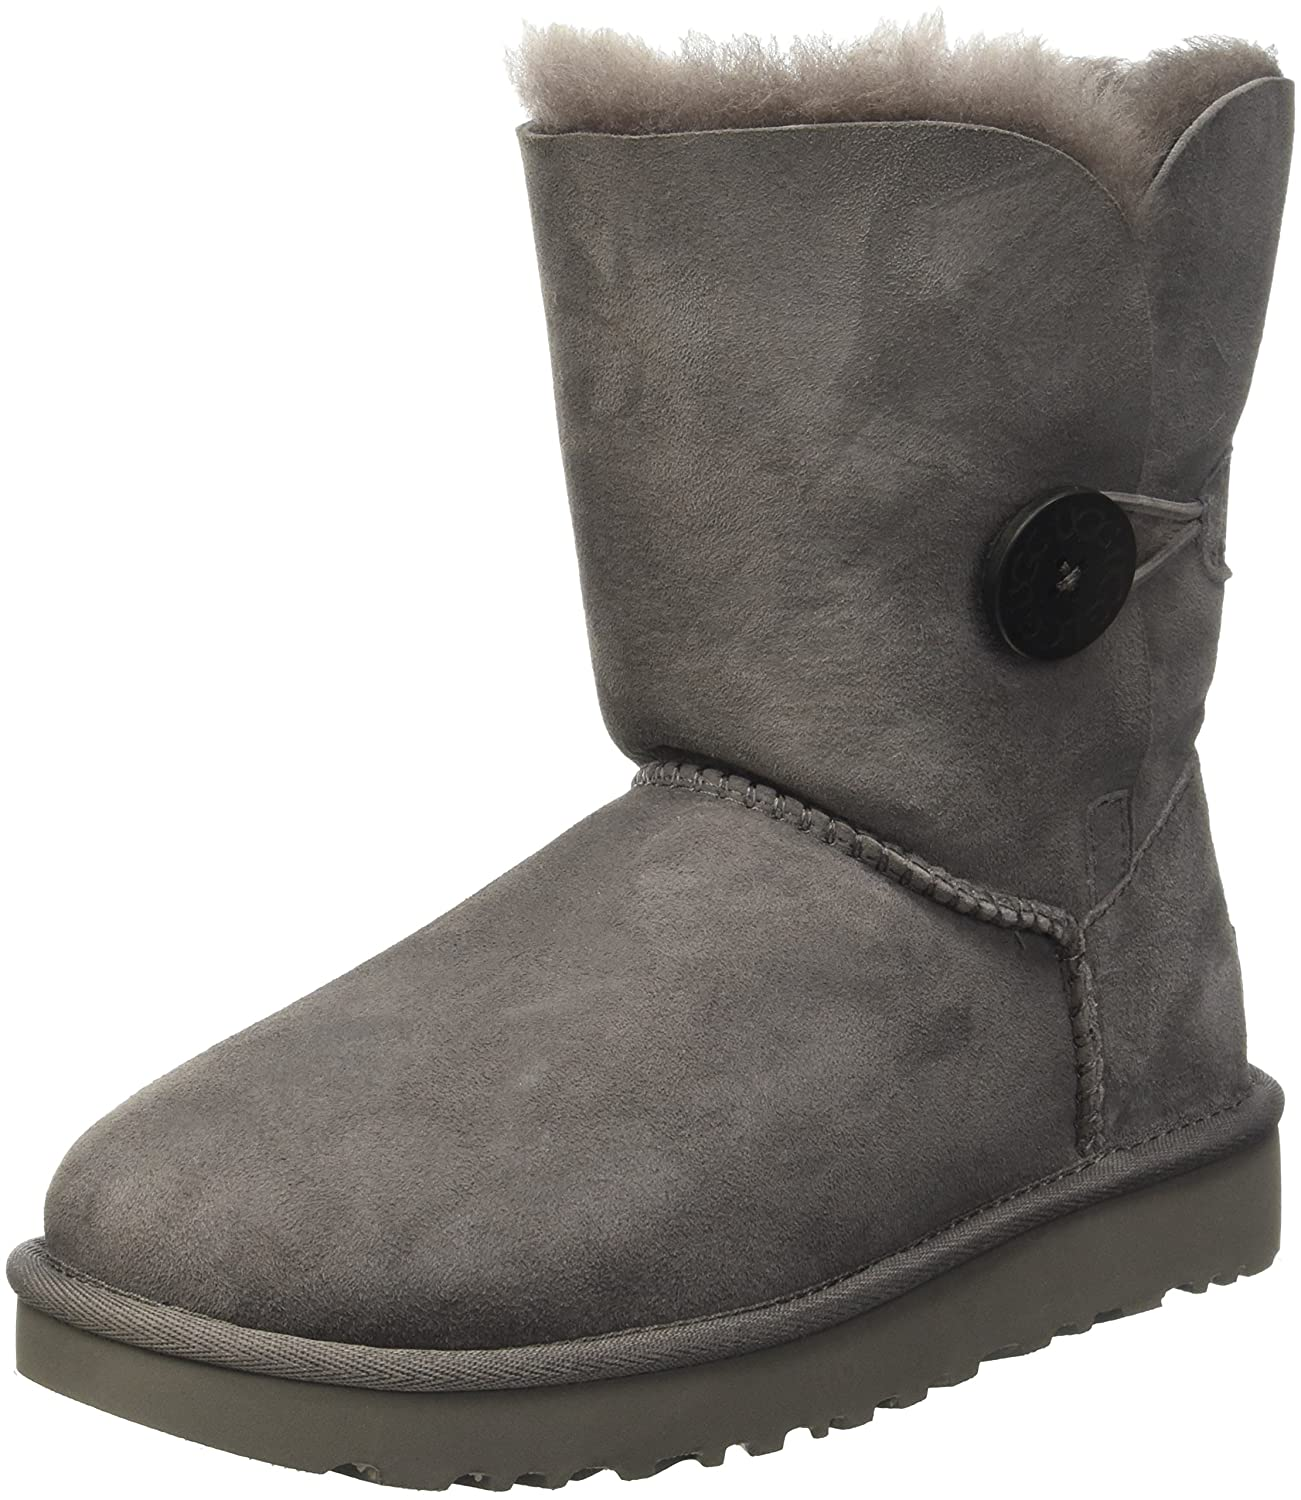 Ugg Impermeables Amazon